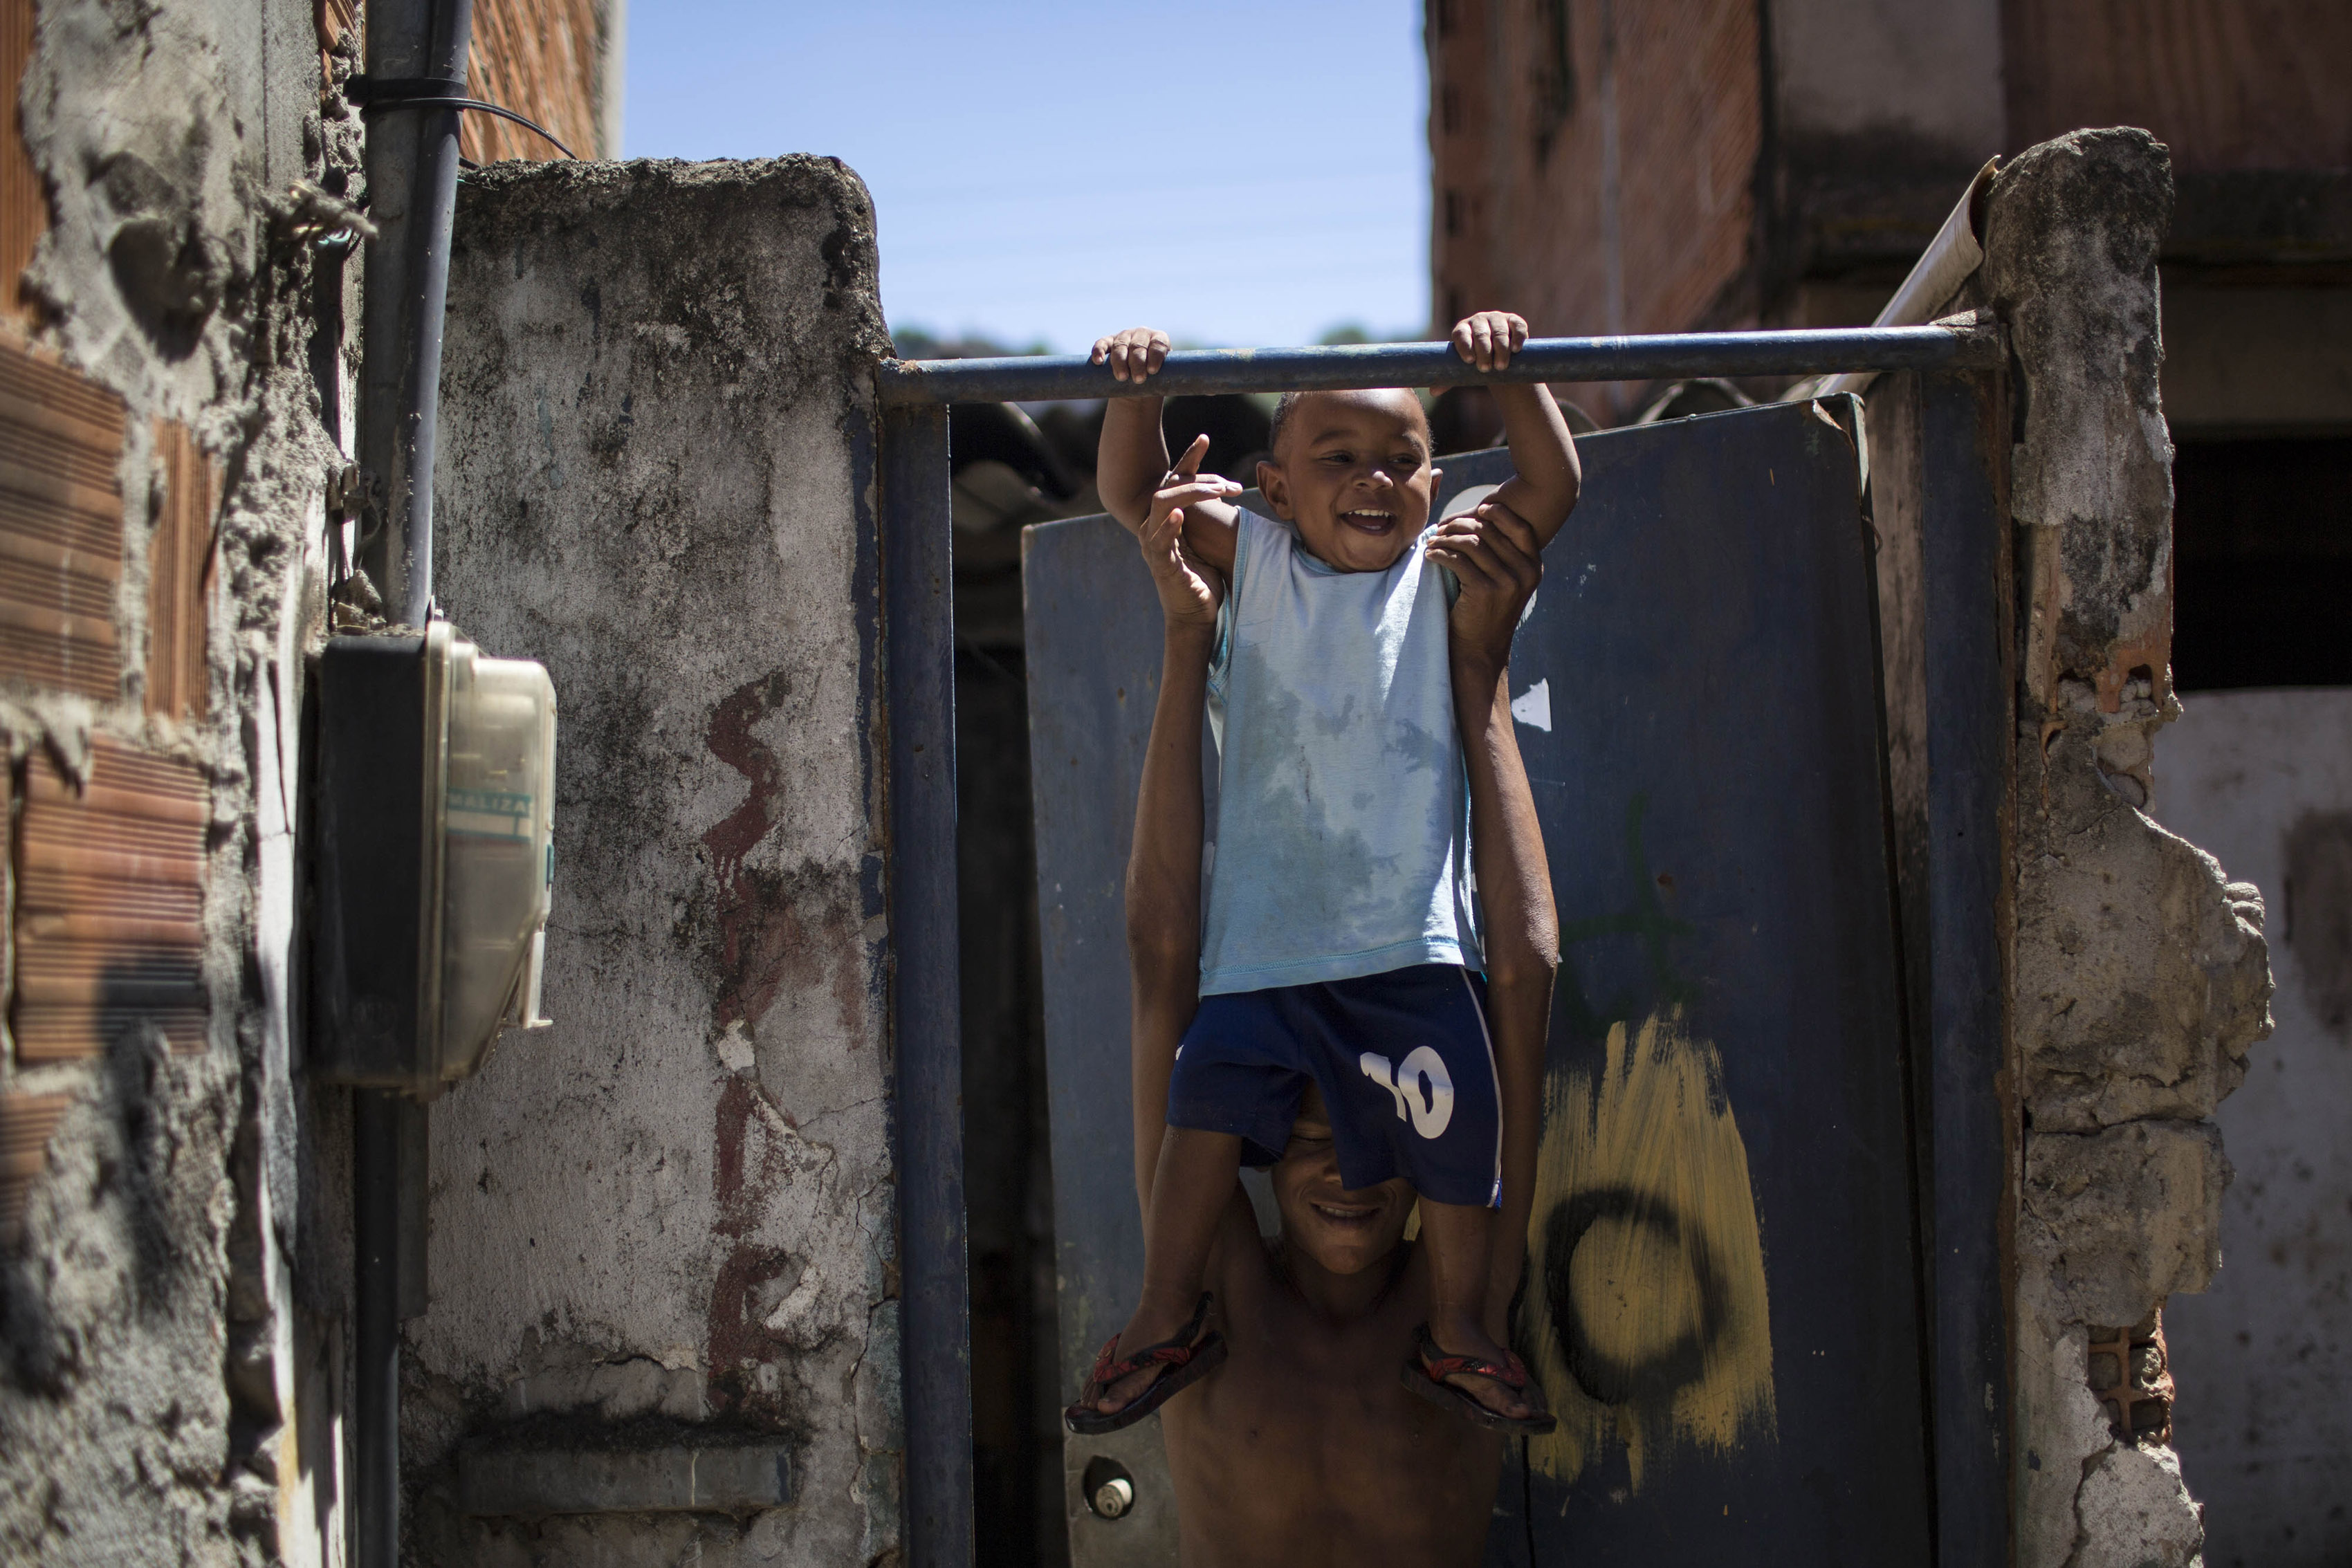 FILE - In this Jan. 10, 2014 file photo, a man plays with a toddler inside the Favela do Metro slum near the Maracana stadium where people have been evicted and homes demolished in preparation for the World Cup and Olympics in Rio de Janeiro, Brazil. A 19